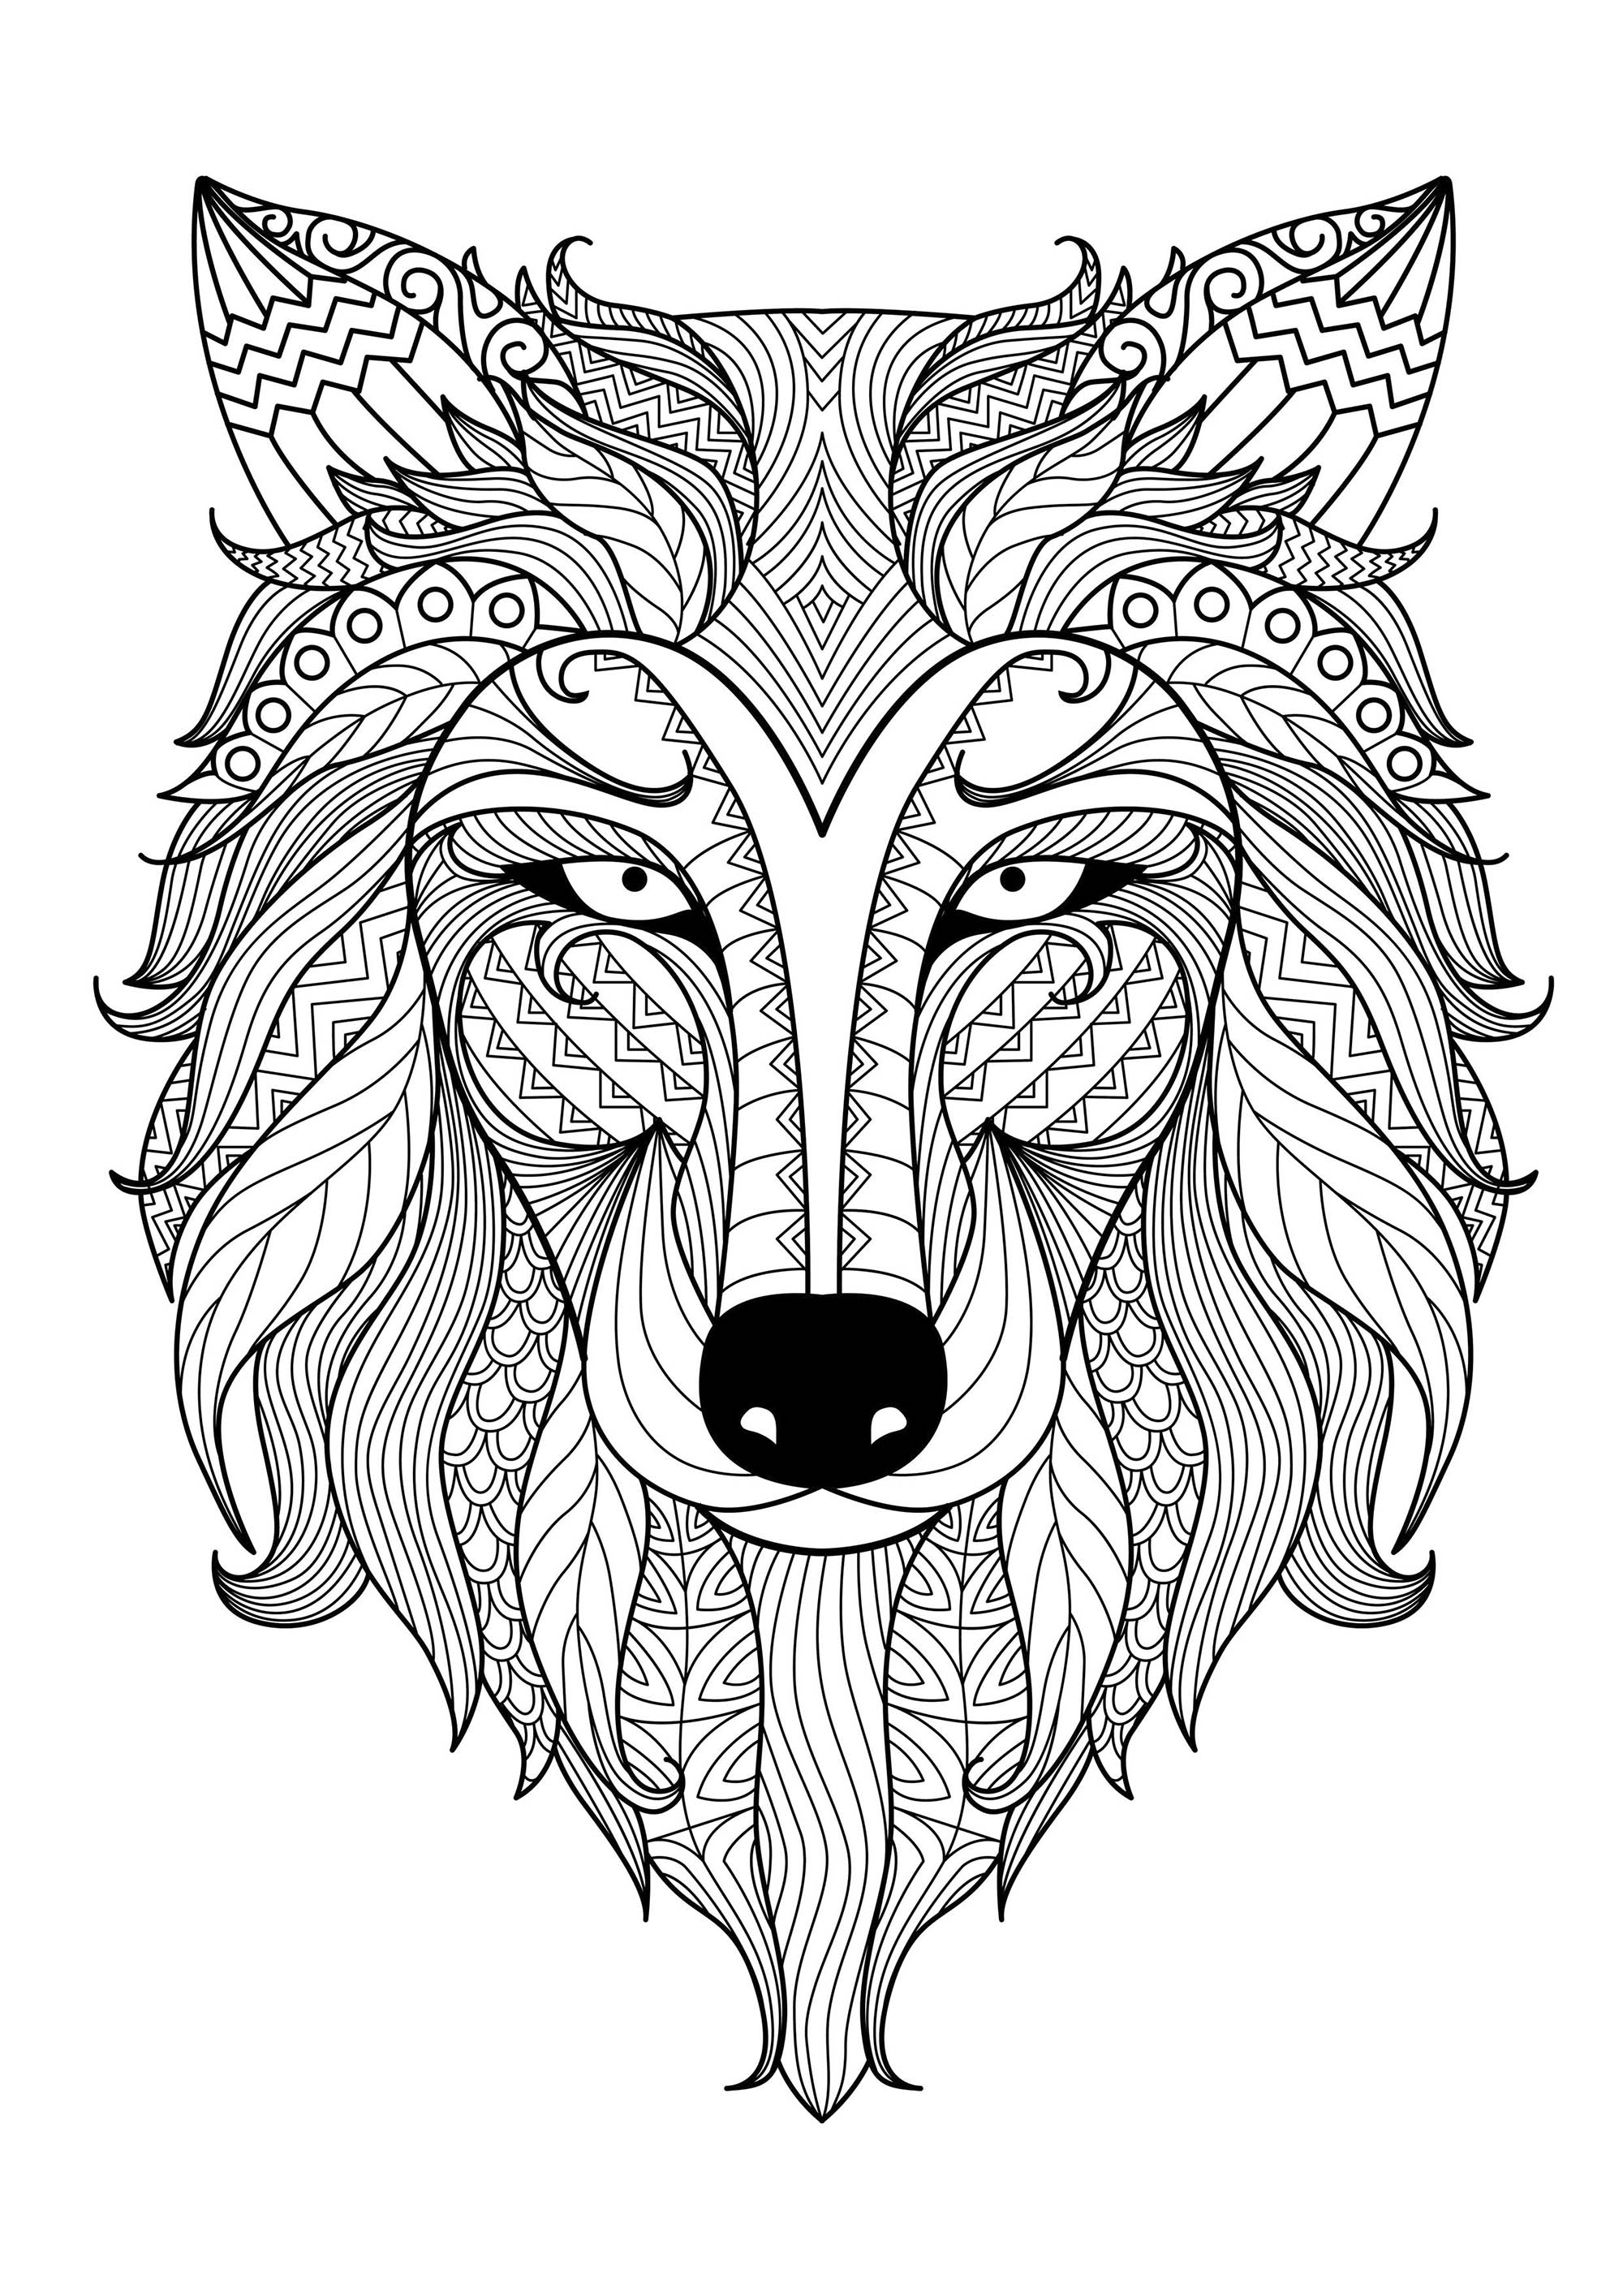 wolf coloring pages for adults big wolf head simple wolves adult coloring pages wolf pages coloring for adults